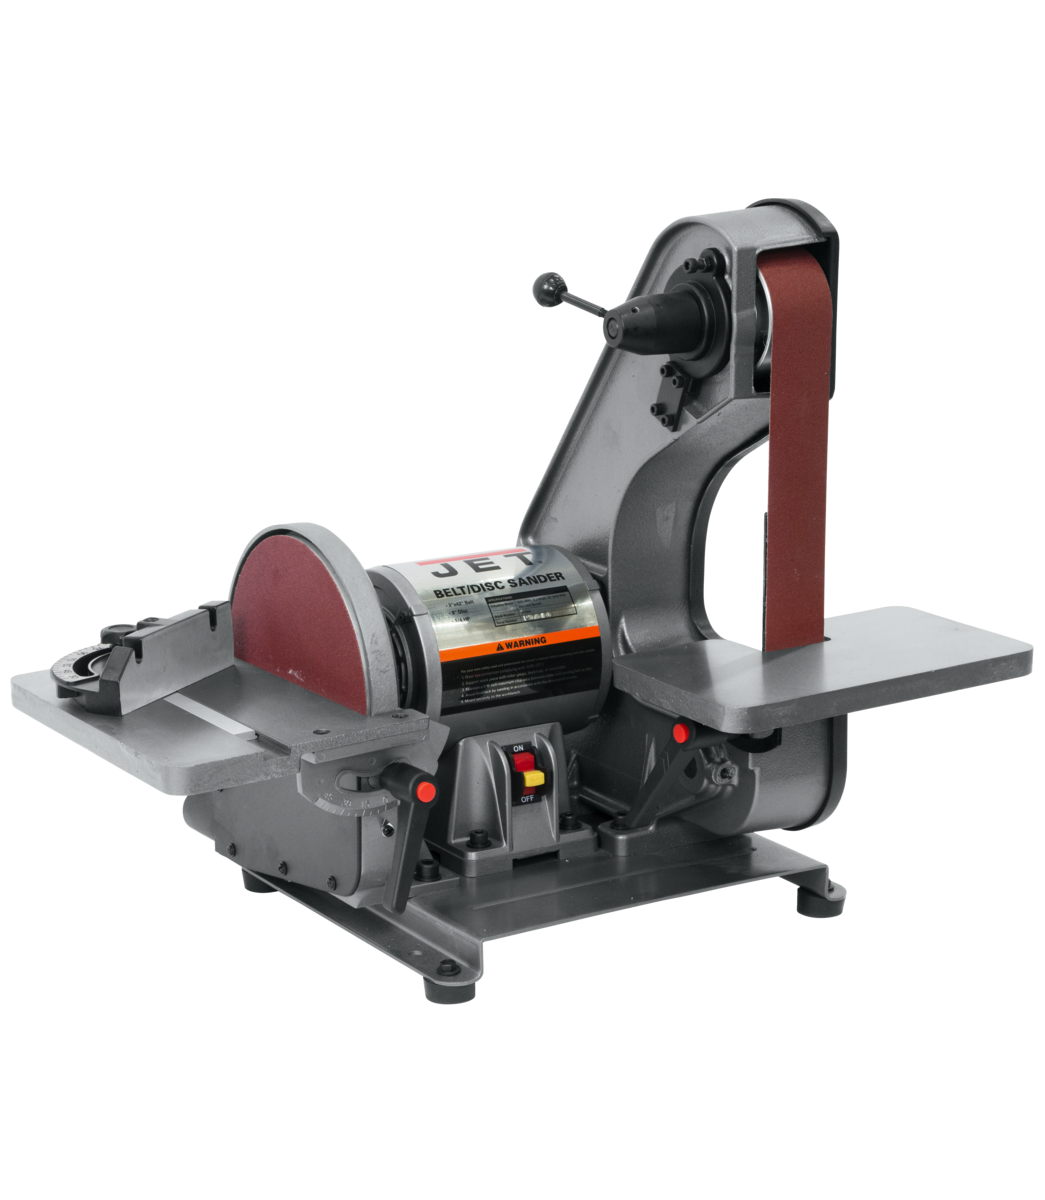 J-41002 2 x 42 Bench Belt Grinder & Disc Sander